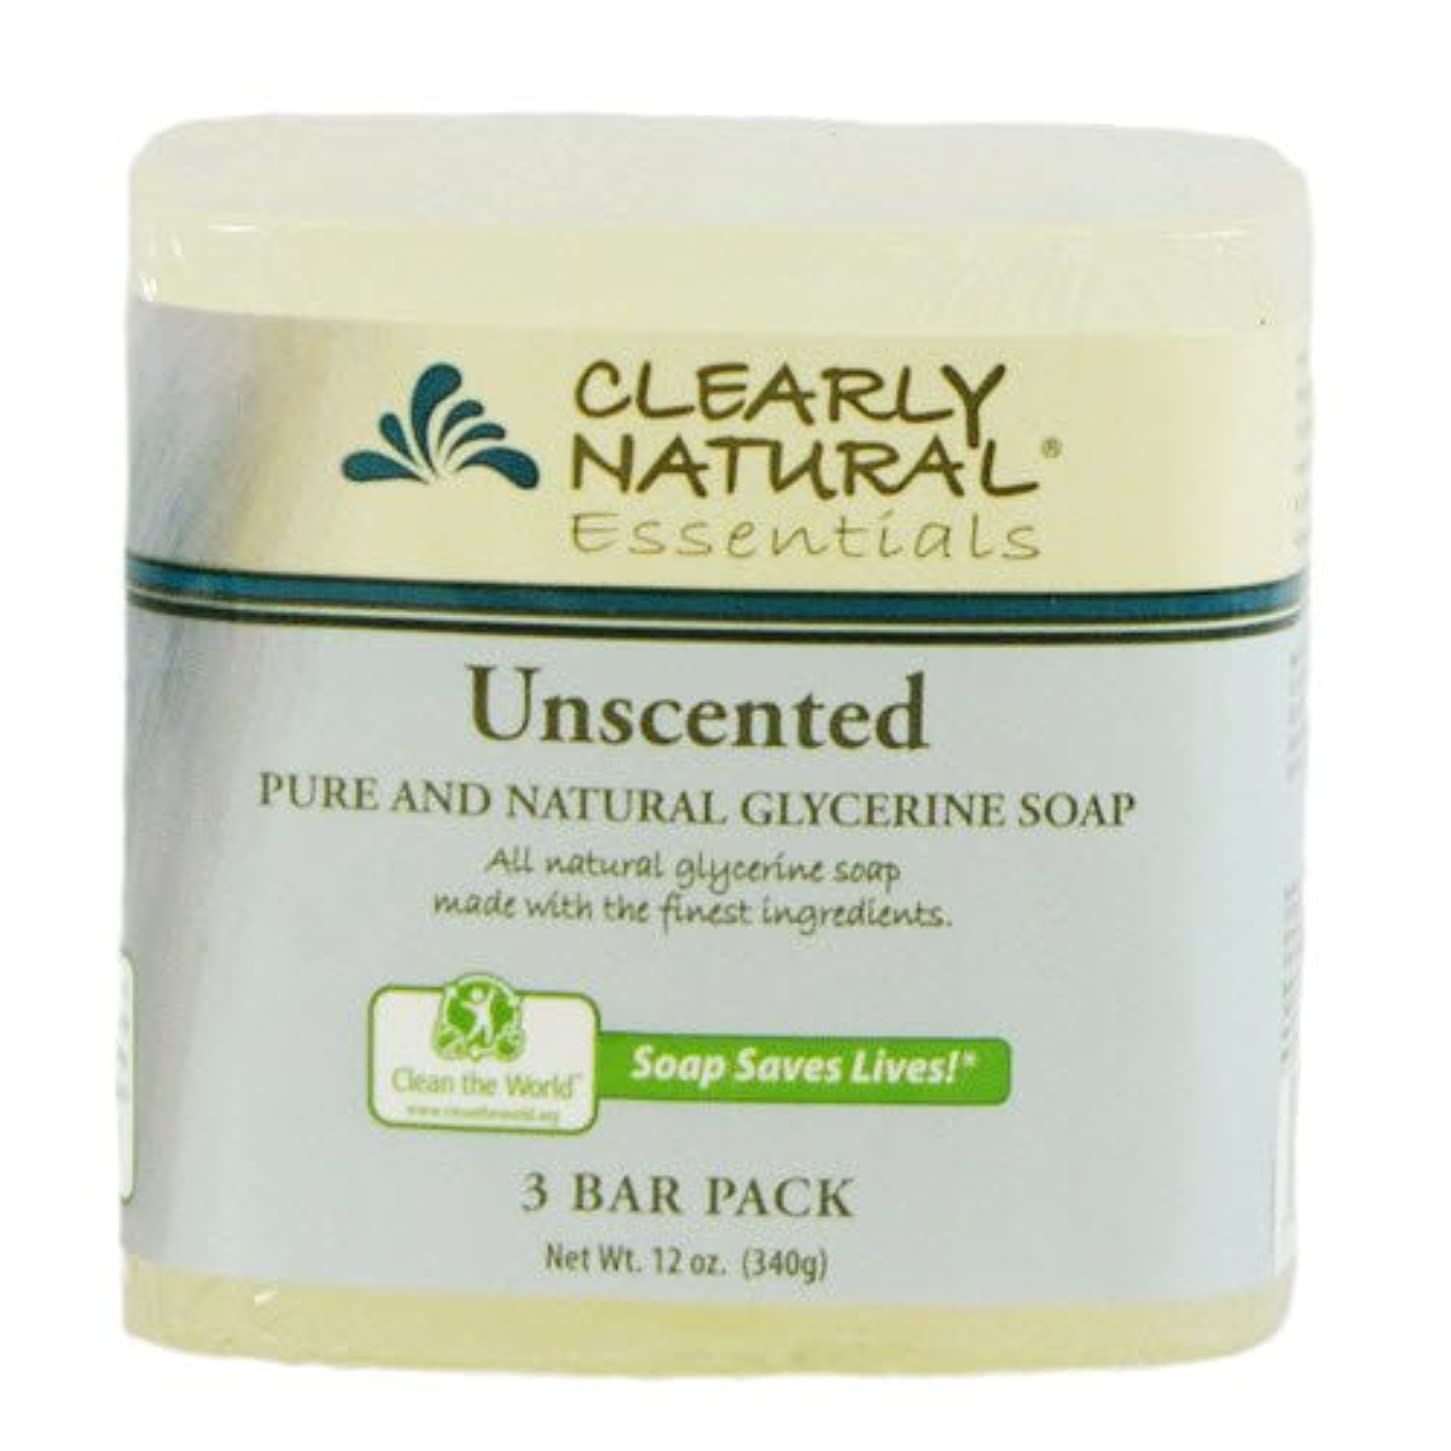 西ストラトフォードオンエイボン人生を作るClearly Natural, Pure and Natural Glycerine Soap, Unscented, 3 Bar Pack, 4 oz Each